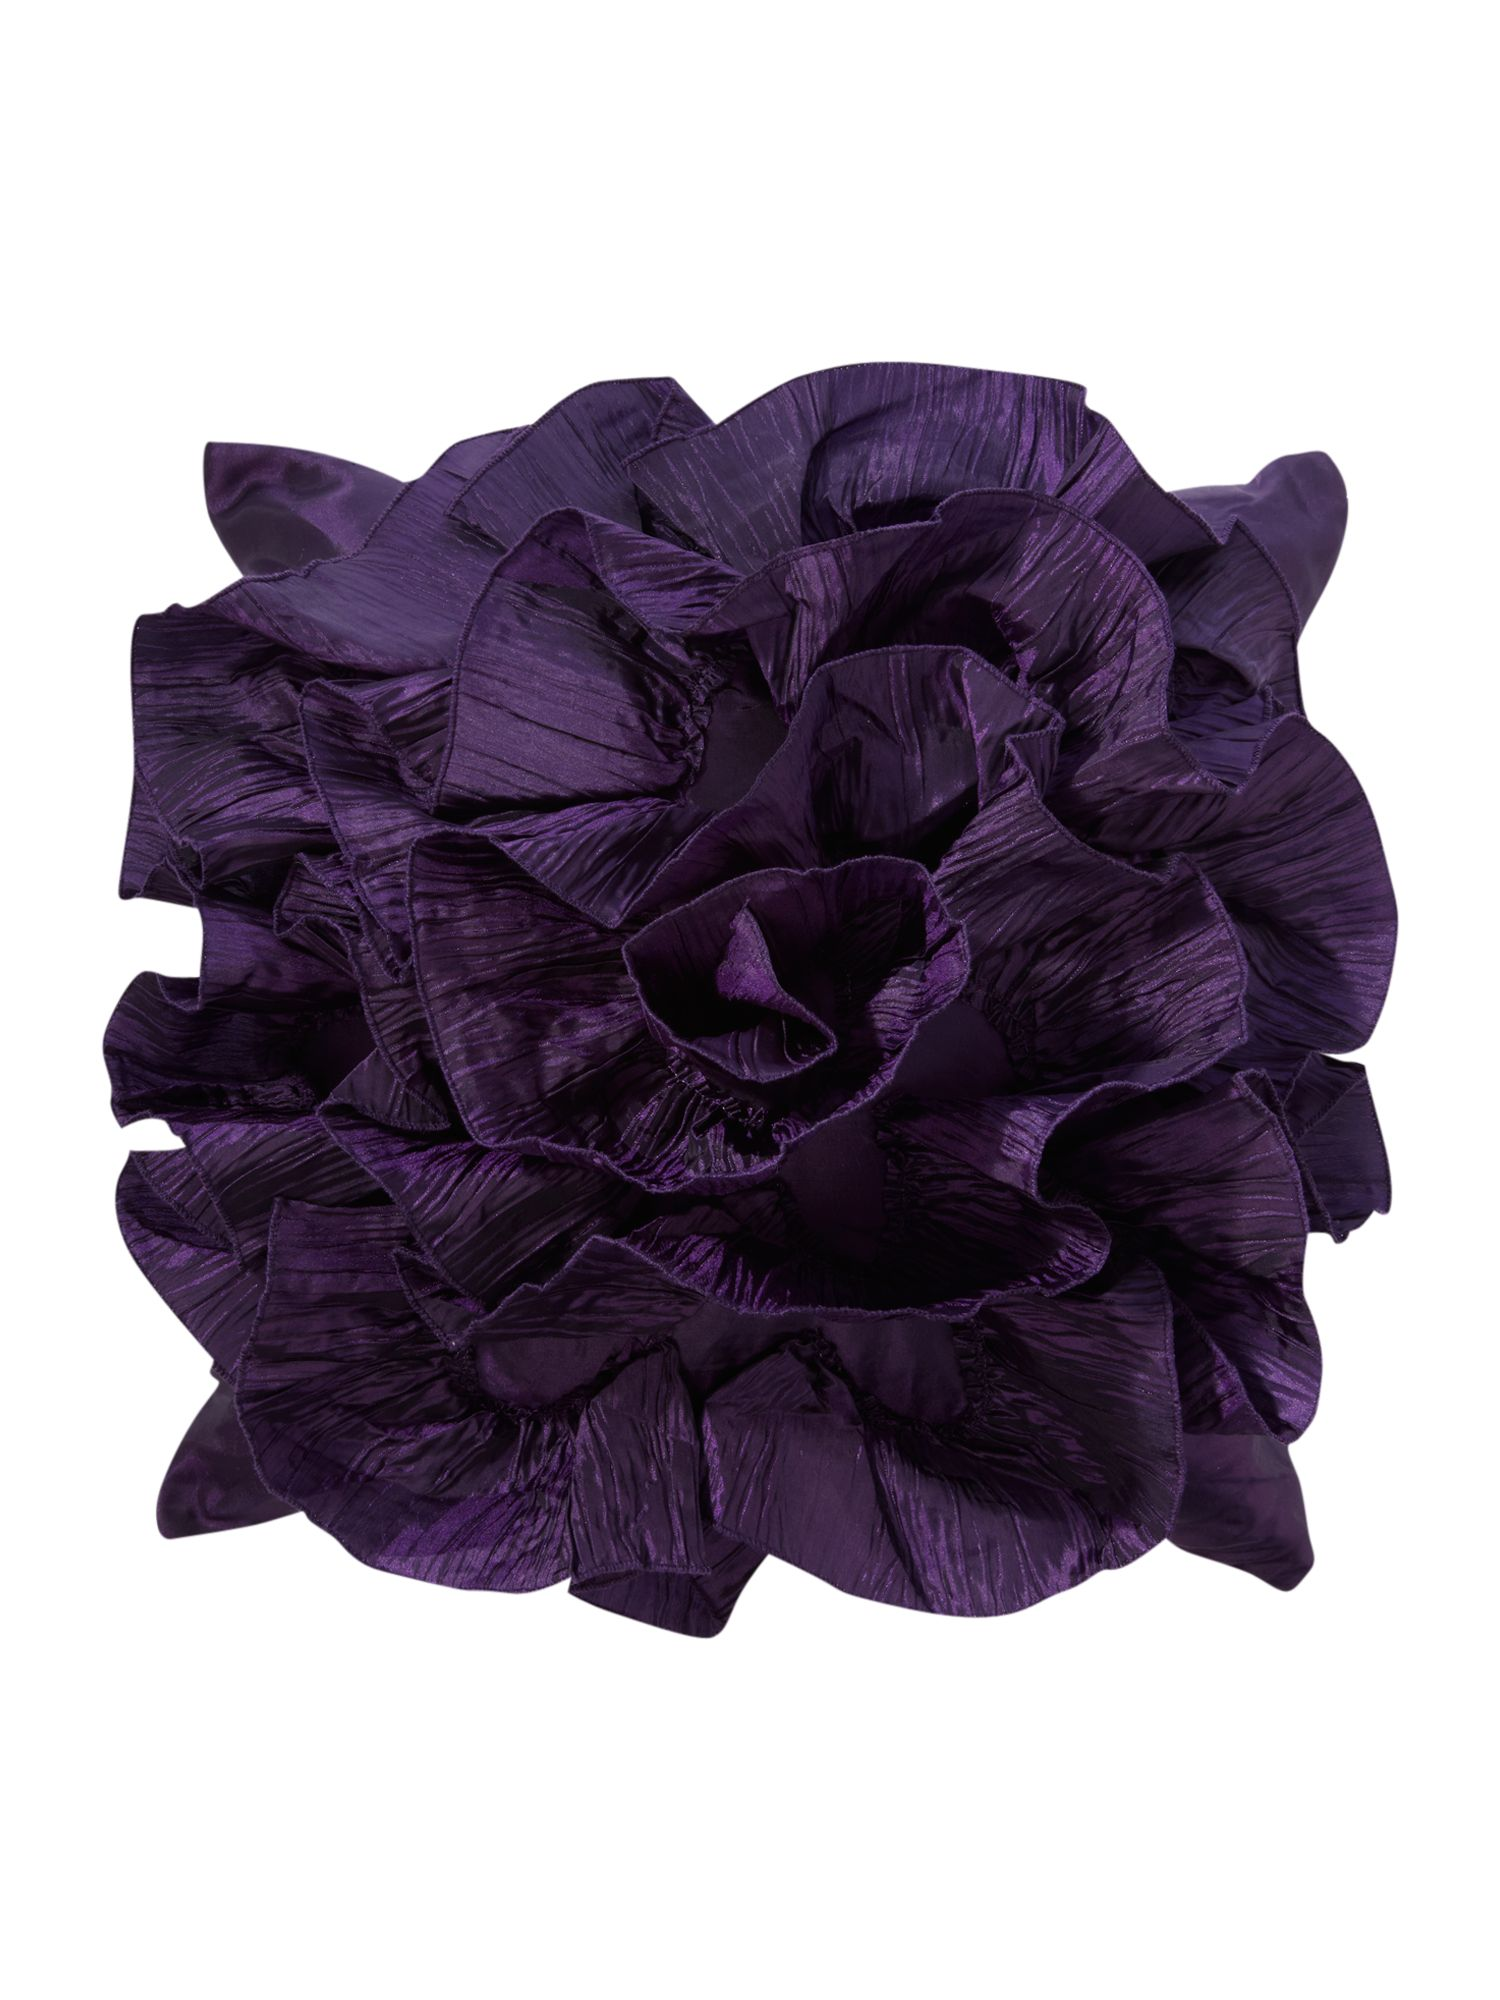 Rosette cushion in plum